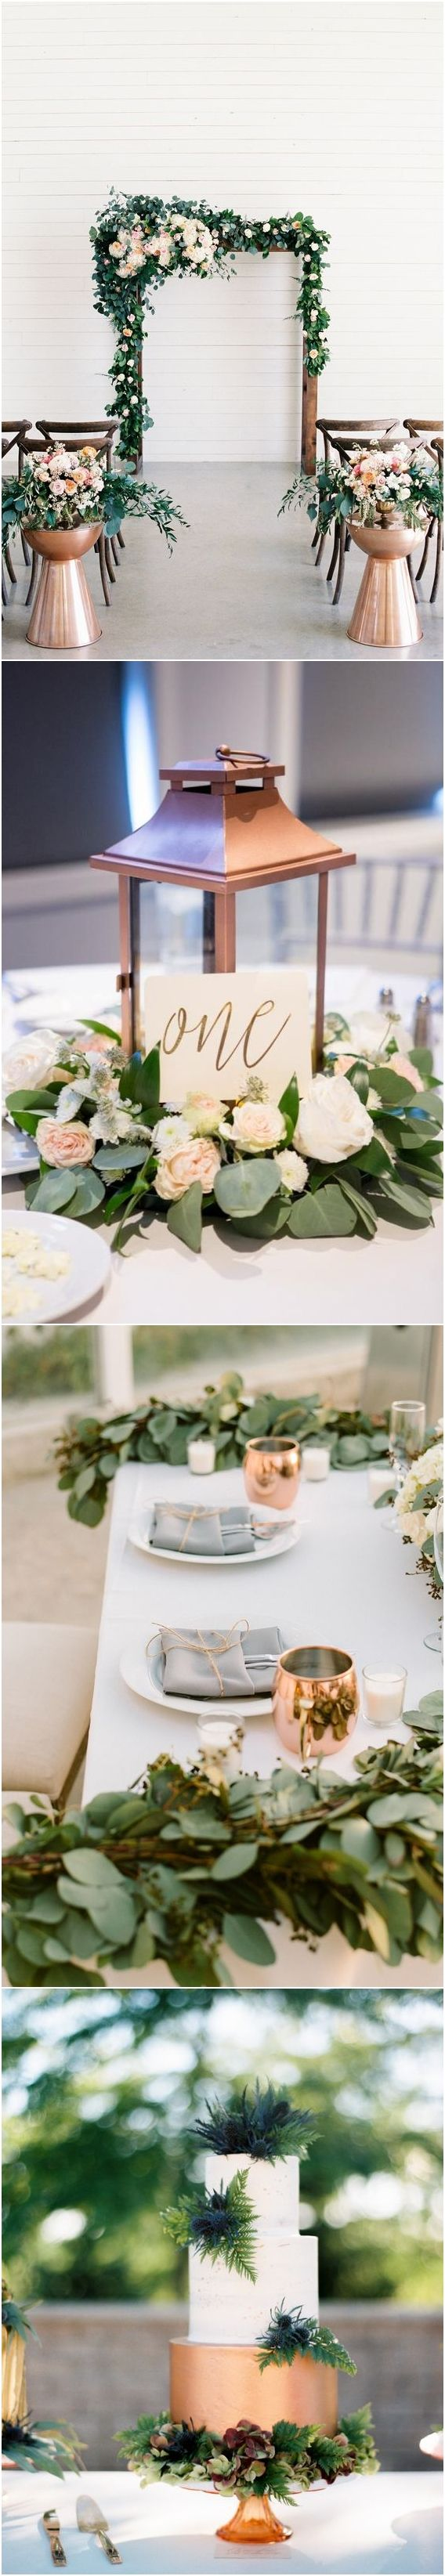 copper lantern and greenery eucalyptus wedding centerpiece ❤️ #greenerywedding #goldwedding #copperwedding #vintagewedding #weddingcolors #weddingideas http://www.deerpearlflowers.com/copper-and-greenery-wedding-color-ideas/